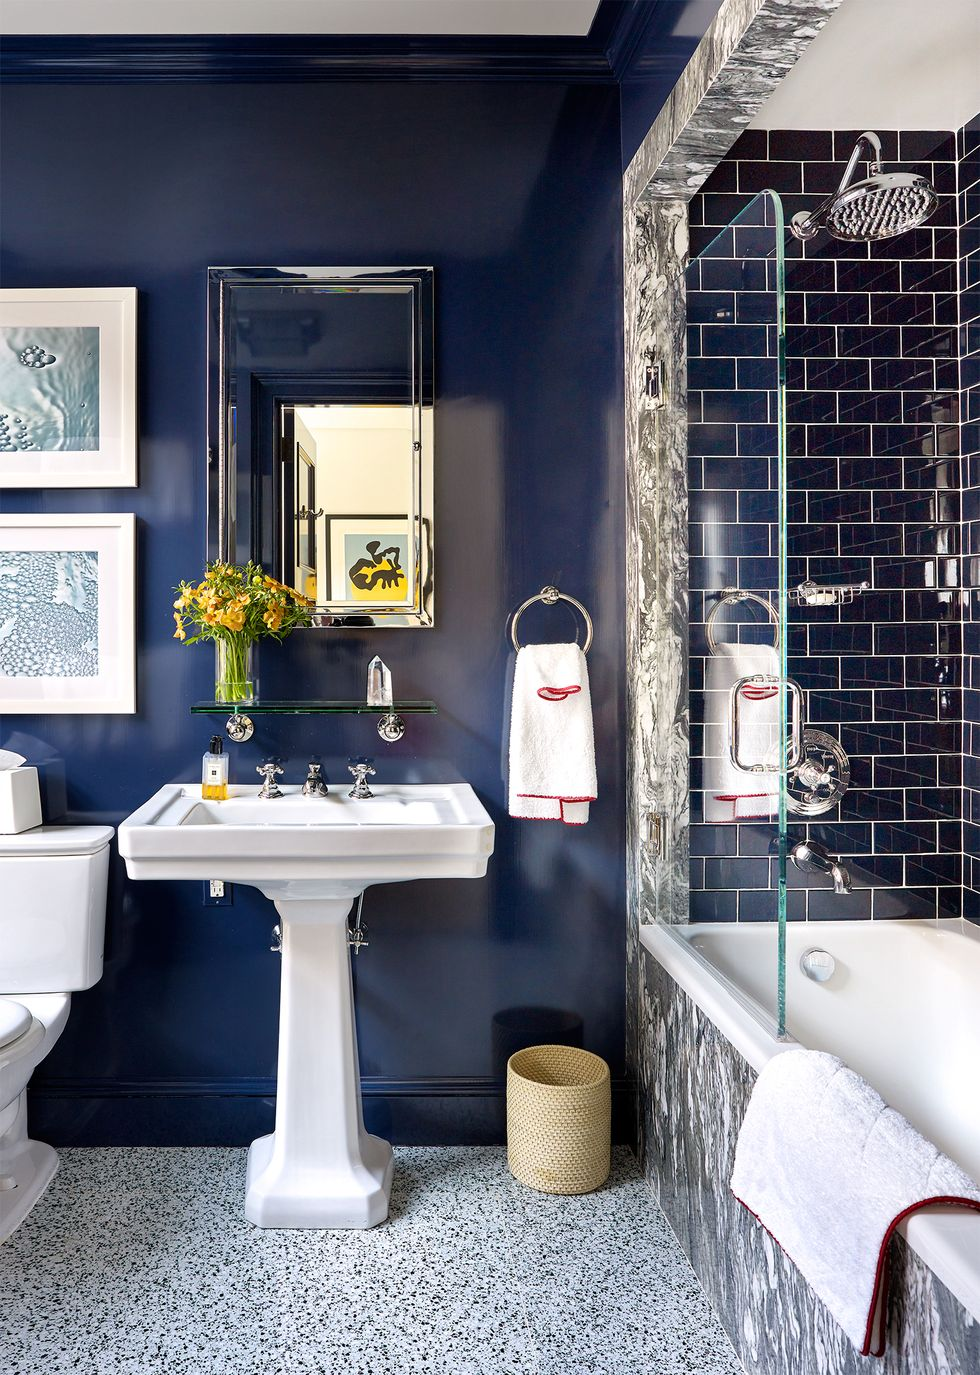 This Prewar Apartment Went From Fussy To Fabulous With A Modern Update Bathroom Design Small Unique Bathroom Tiles Small Bathroom